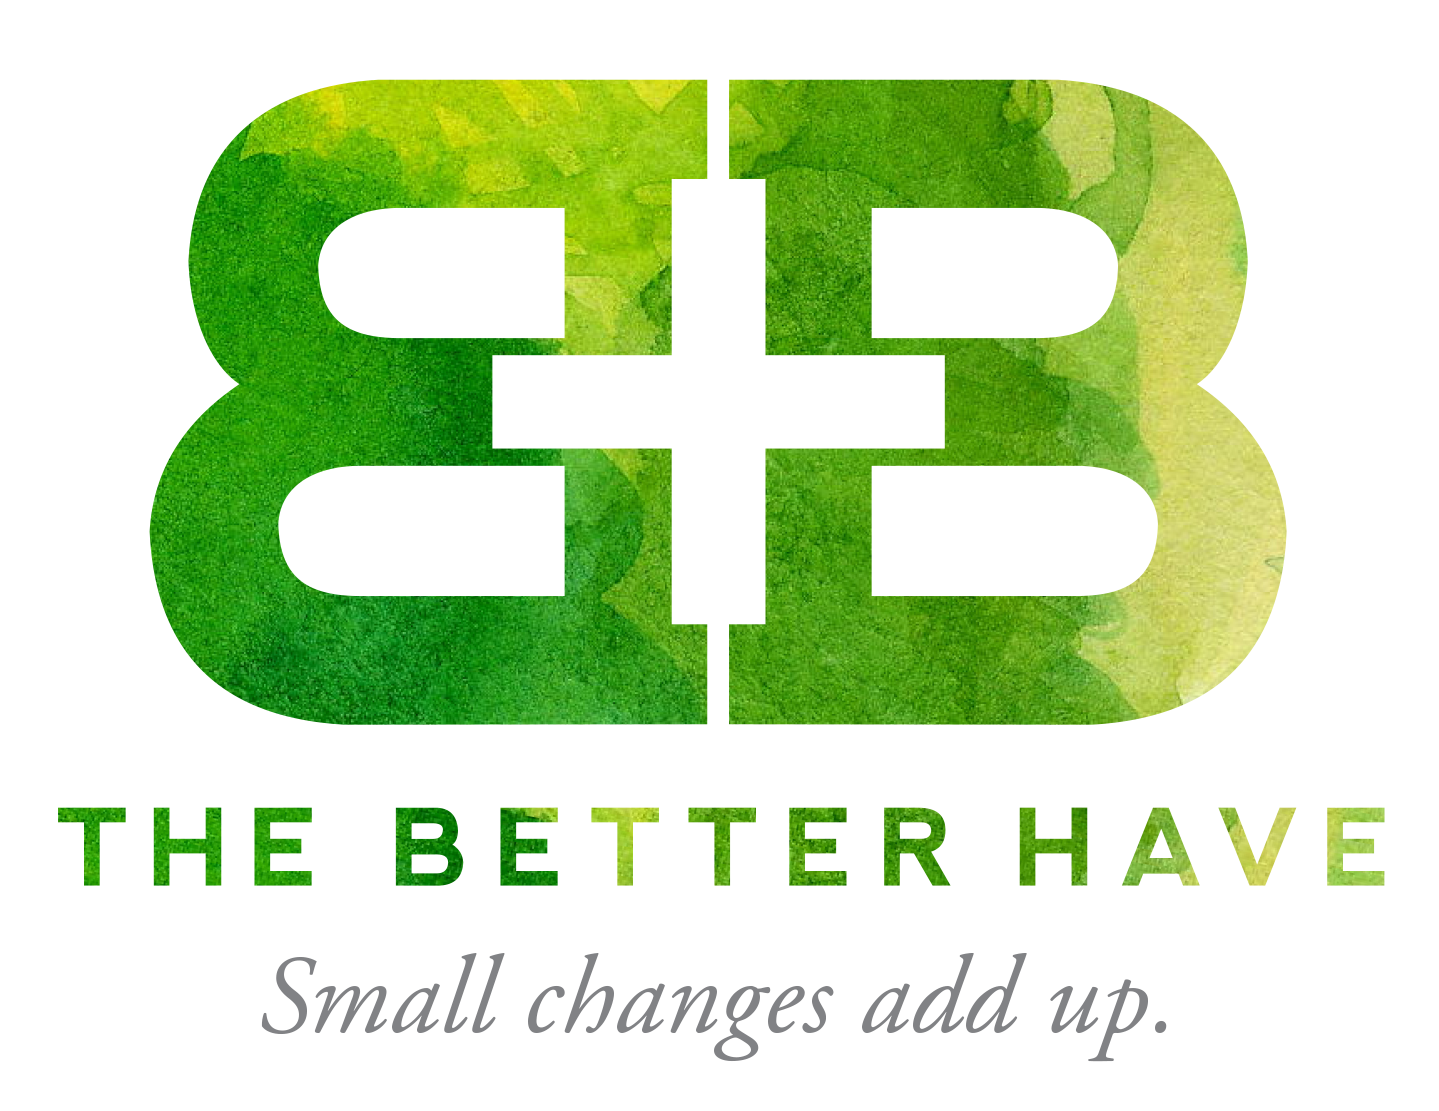 The Better Have - Small changes add up